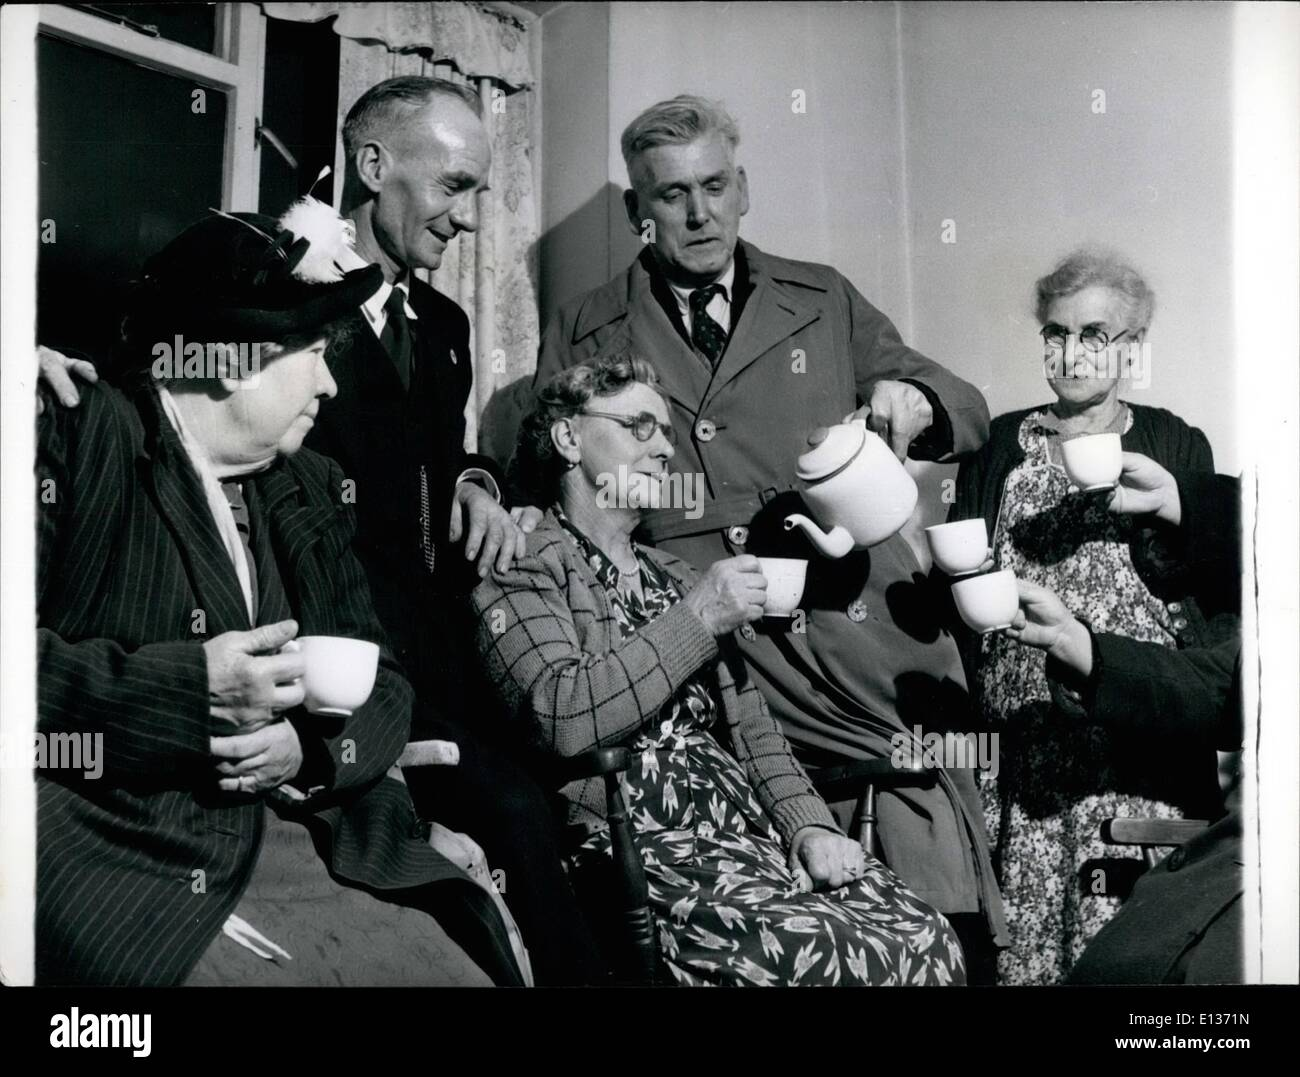 Feb. 28, 2012 - The work of the 11th Crusade: Part of the varied voluntary work by crusaders Sam Jones and Bill Smith is helping at the Dockland Settlement here they are pouring tea for Mrs Barclay, Mrs Baker and Miss Uden, members of the old Age Pensioners Club. - Stock Image